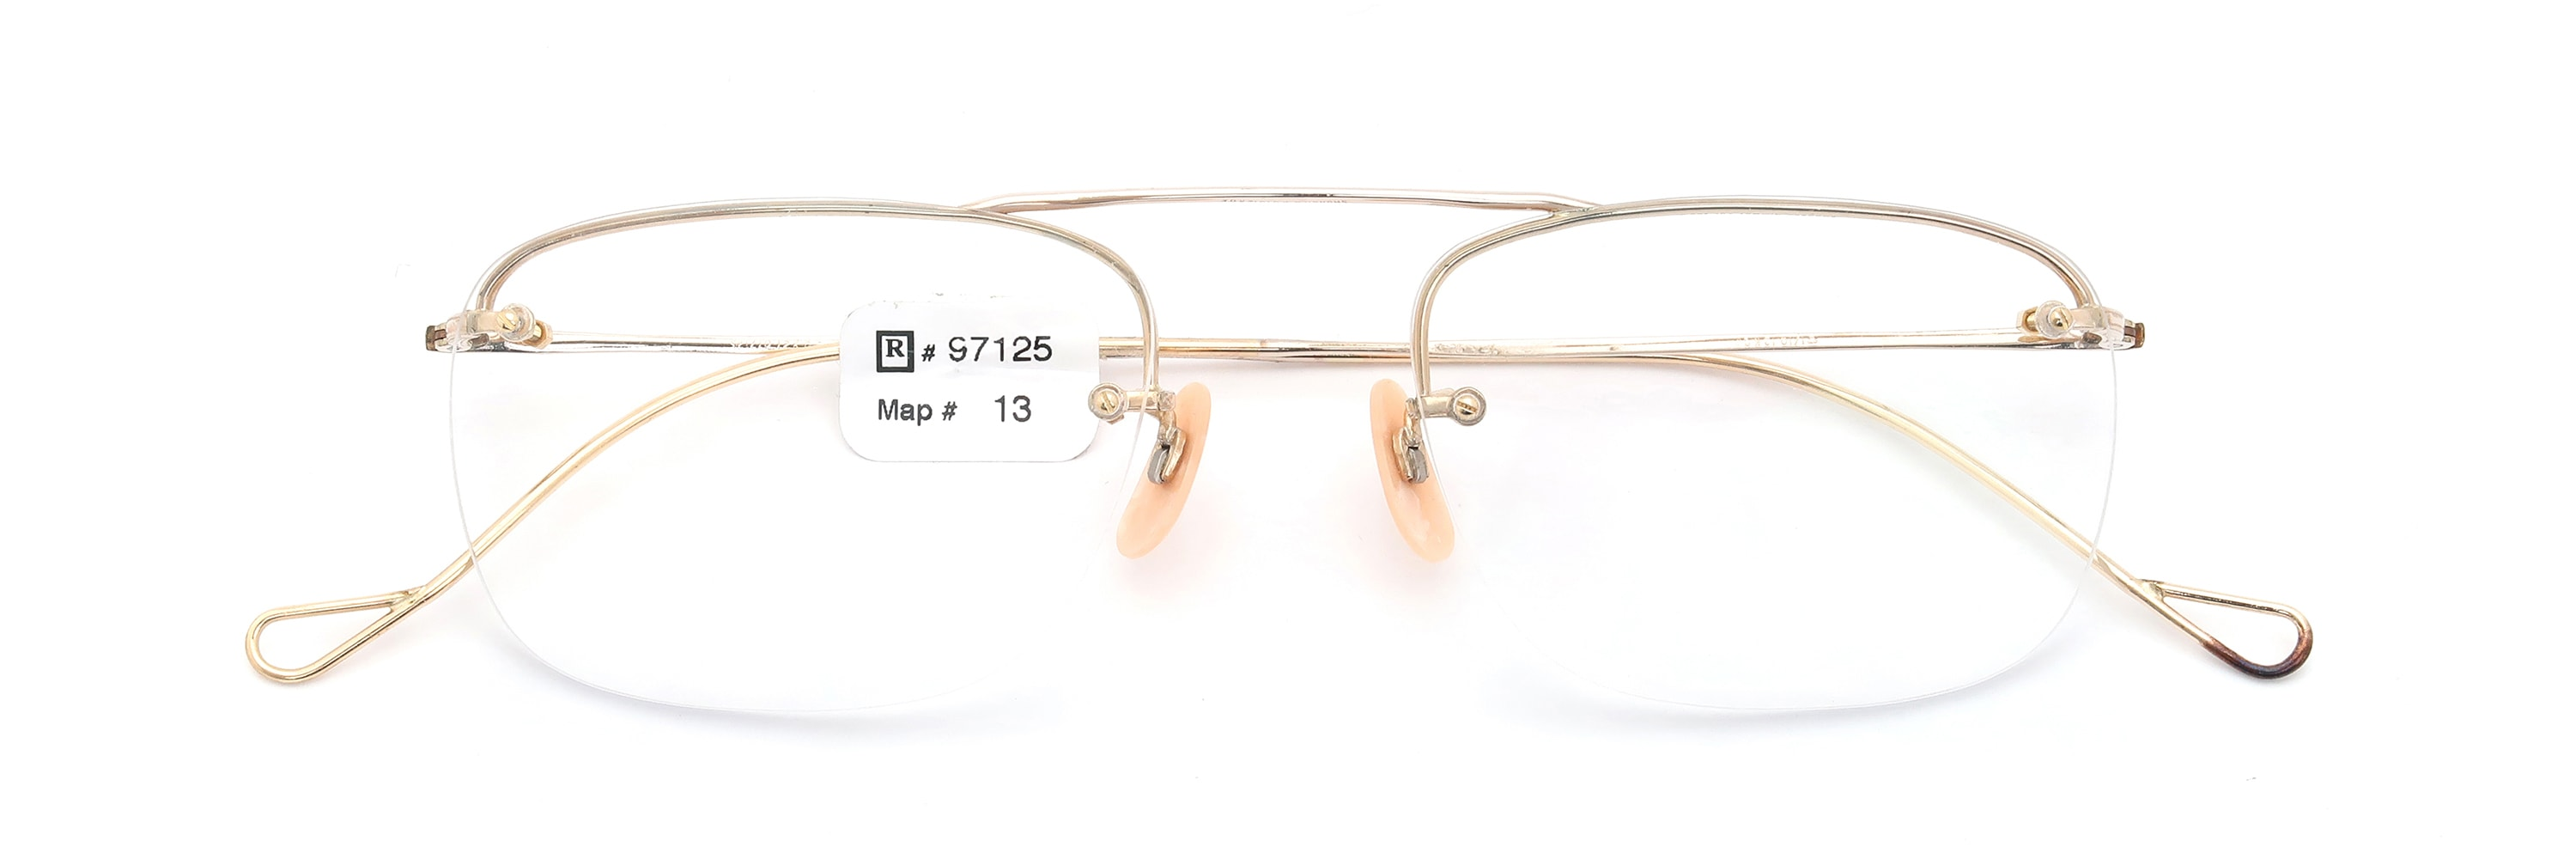 The Spectacle メガネ 1938-1950s SHURON Mid-Century-Modern-Bar SHURSET RIMWAY FUL-VUE 1/10 12KGF